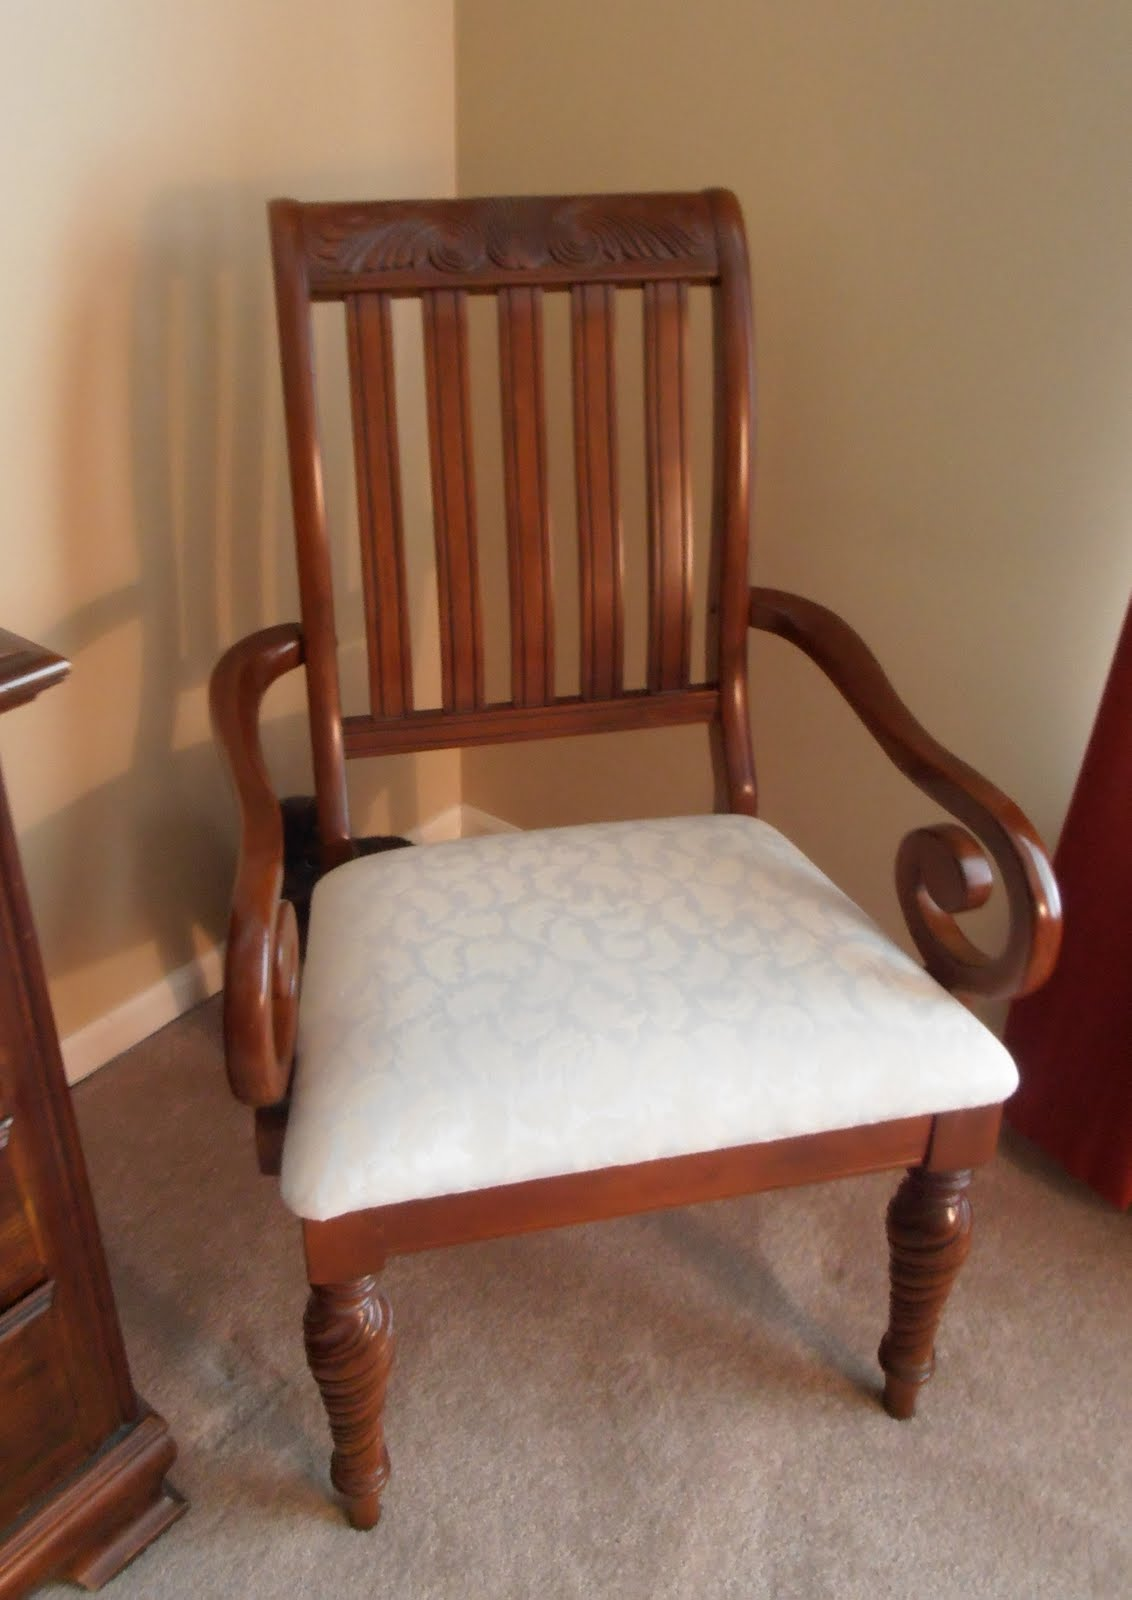 Seat Covers For Chairs Chair Seat Covers Cheapest Way To Reorganize Home This